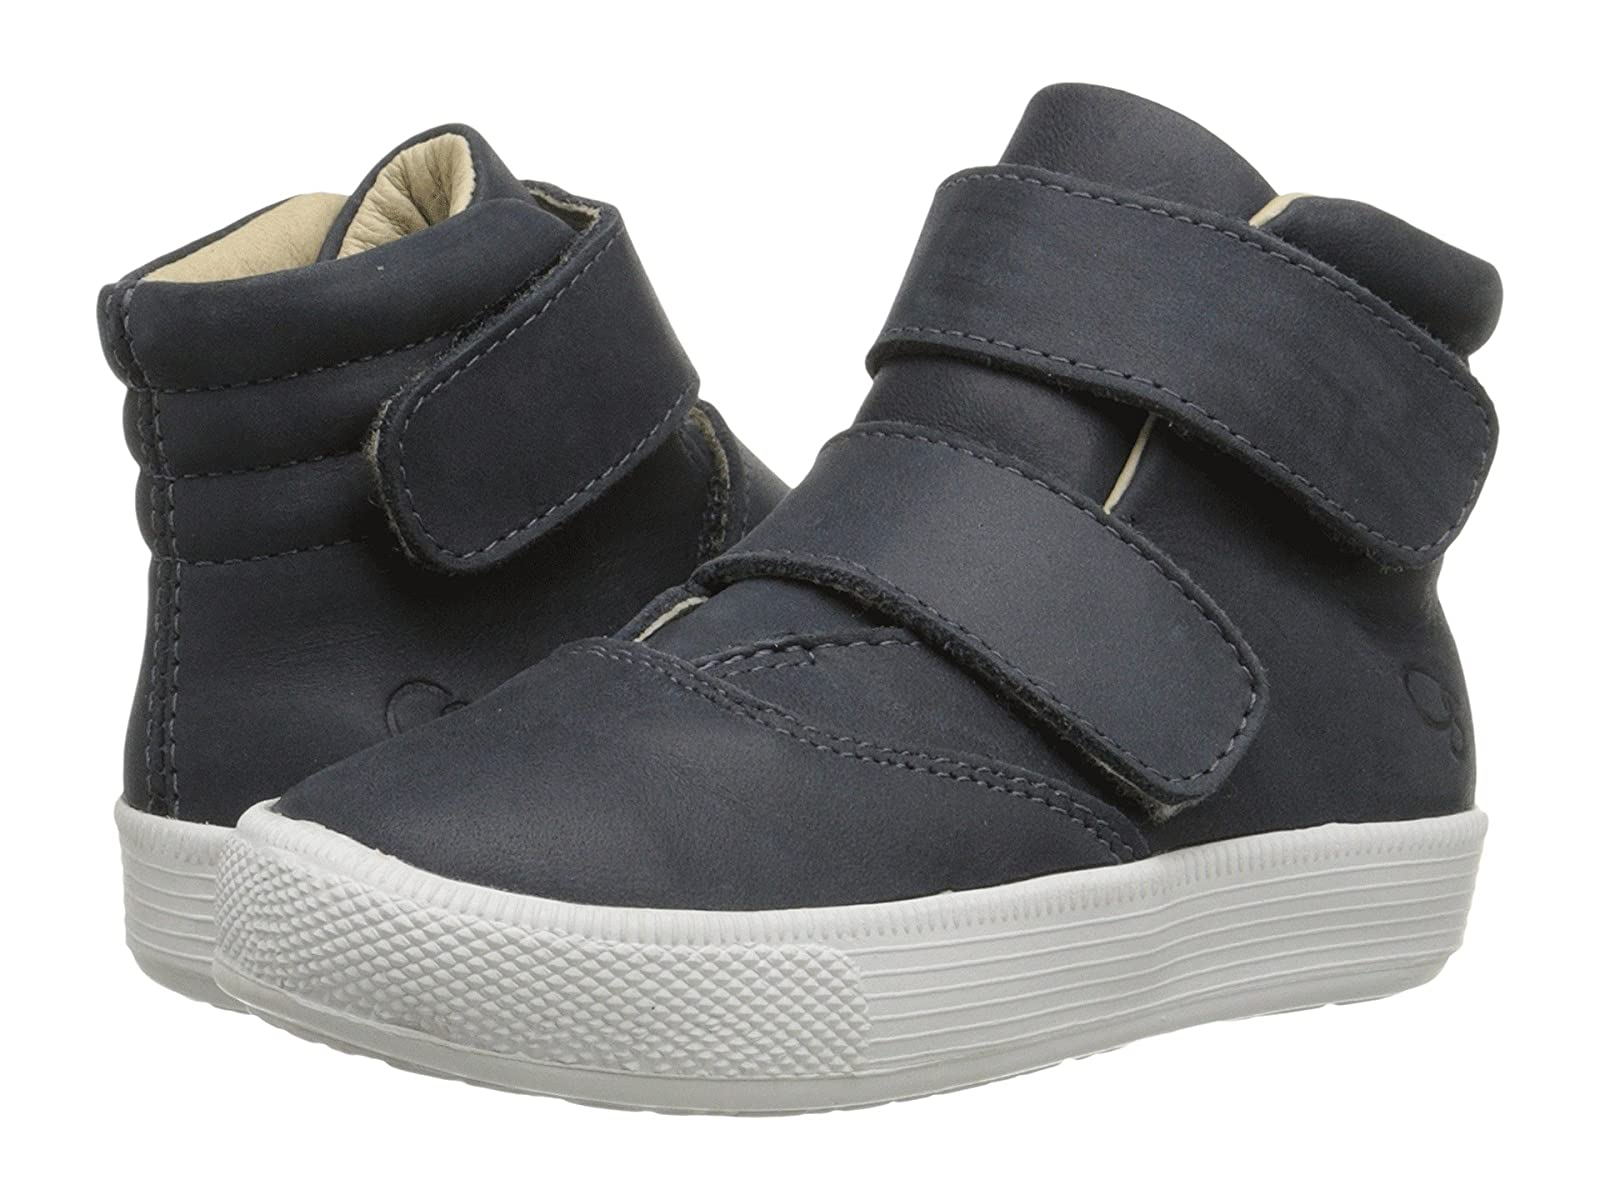 Old Soles Space Shoe (Toddler/Little Kid)Cheap and distinctive eye-catching shoes